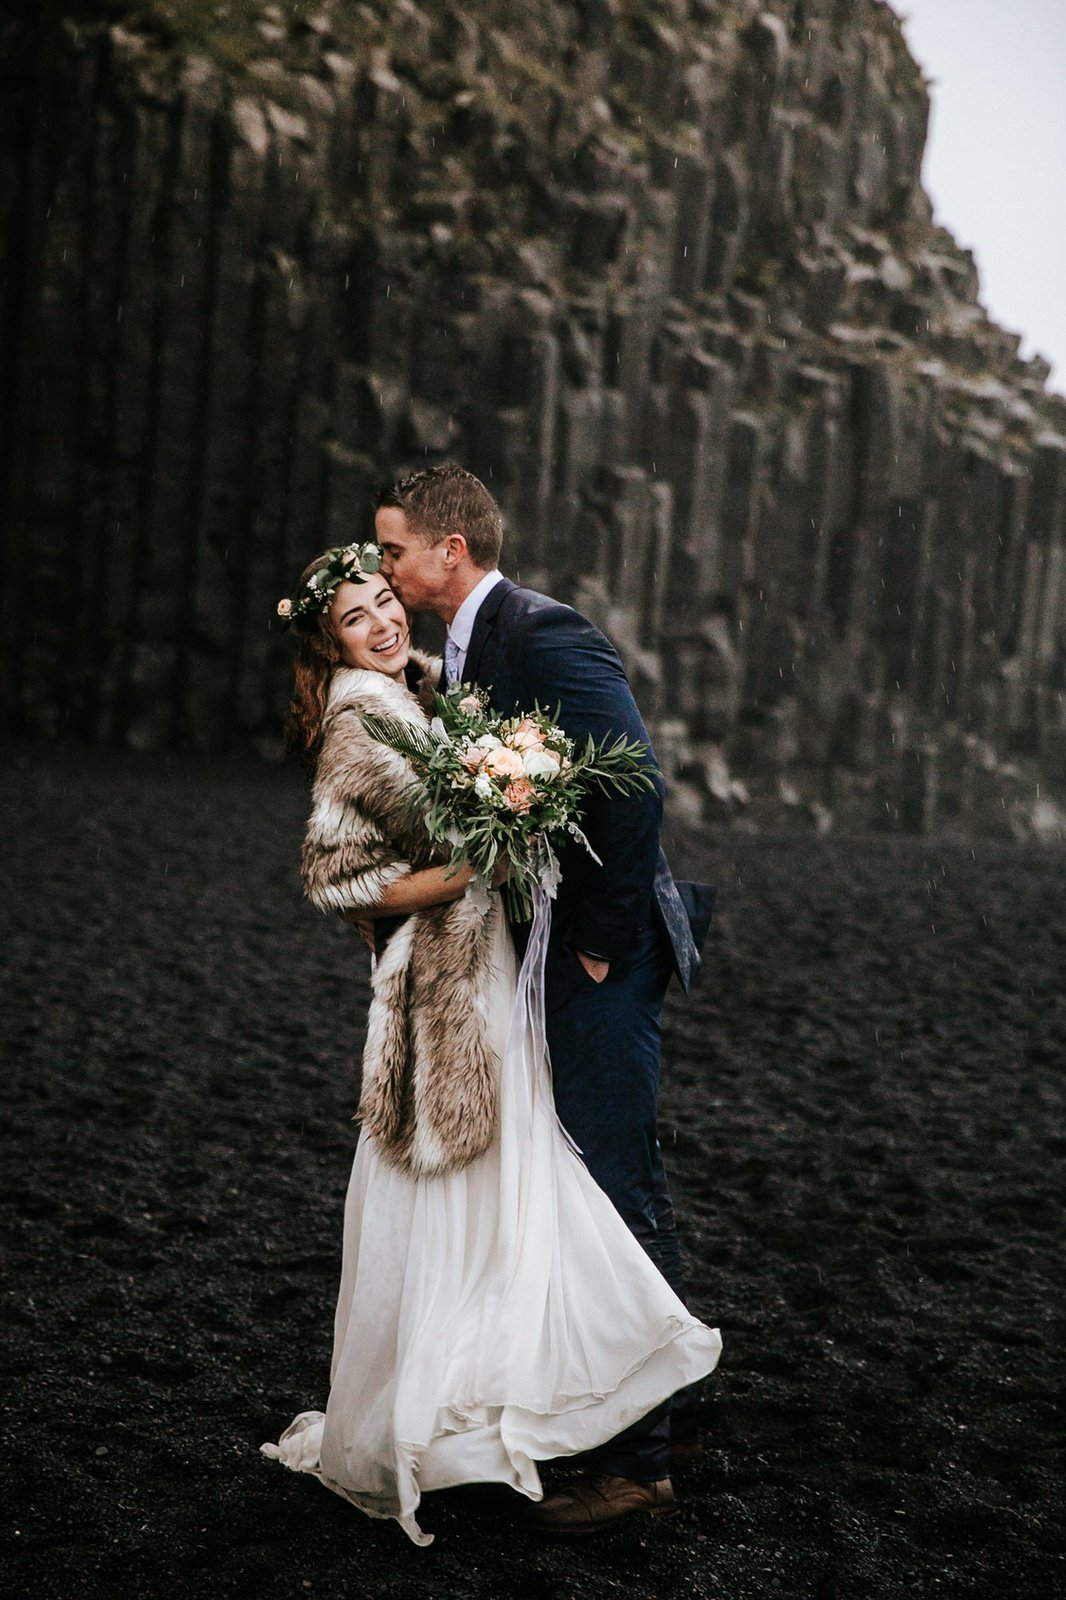 Rainy Iceland Elopement at Reynisfjara Beach